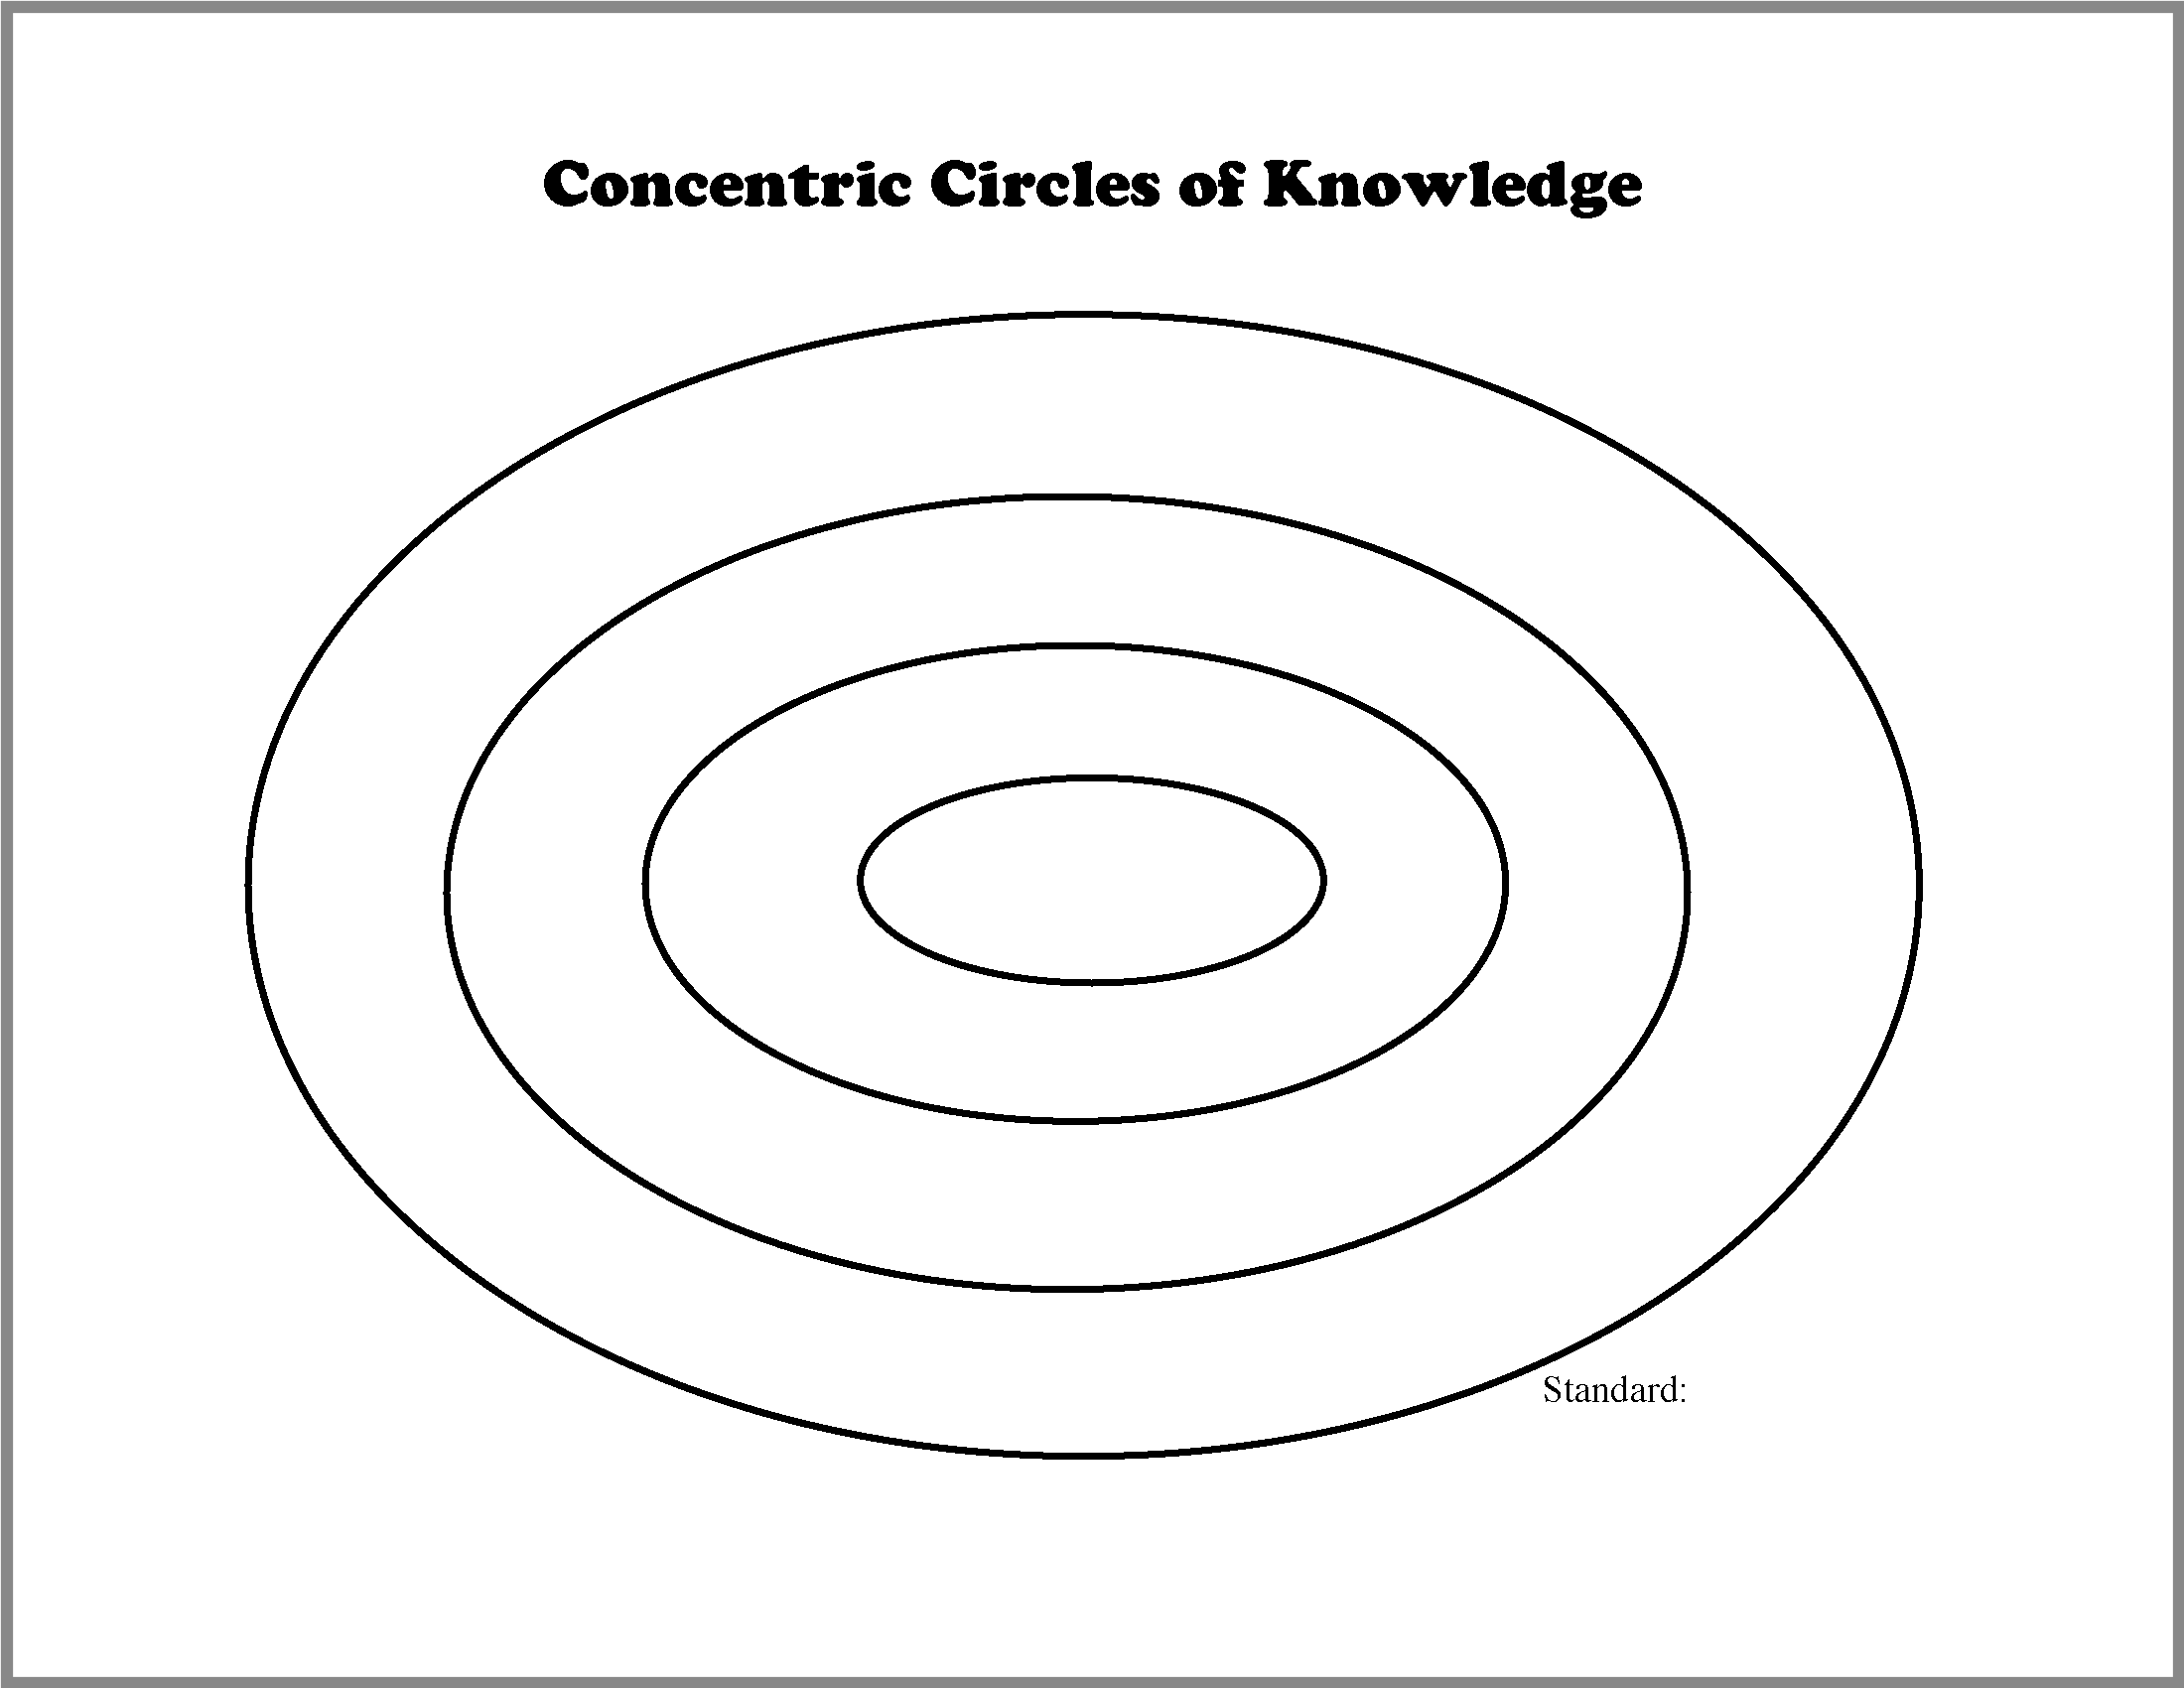 Envision Gifted. Concentric Circles of Knowledge Template